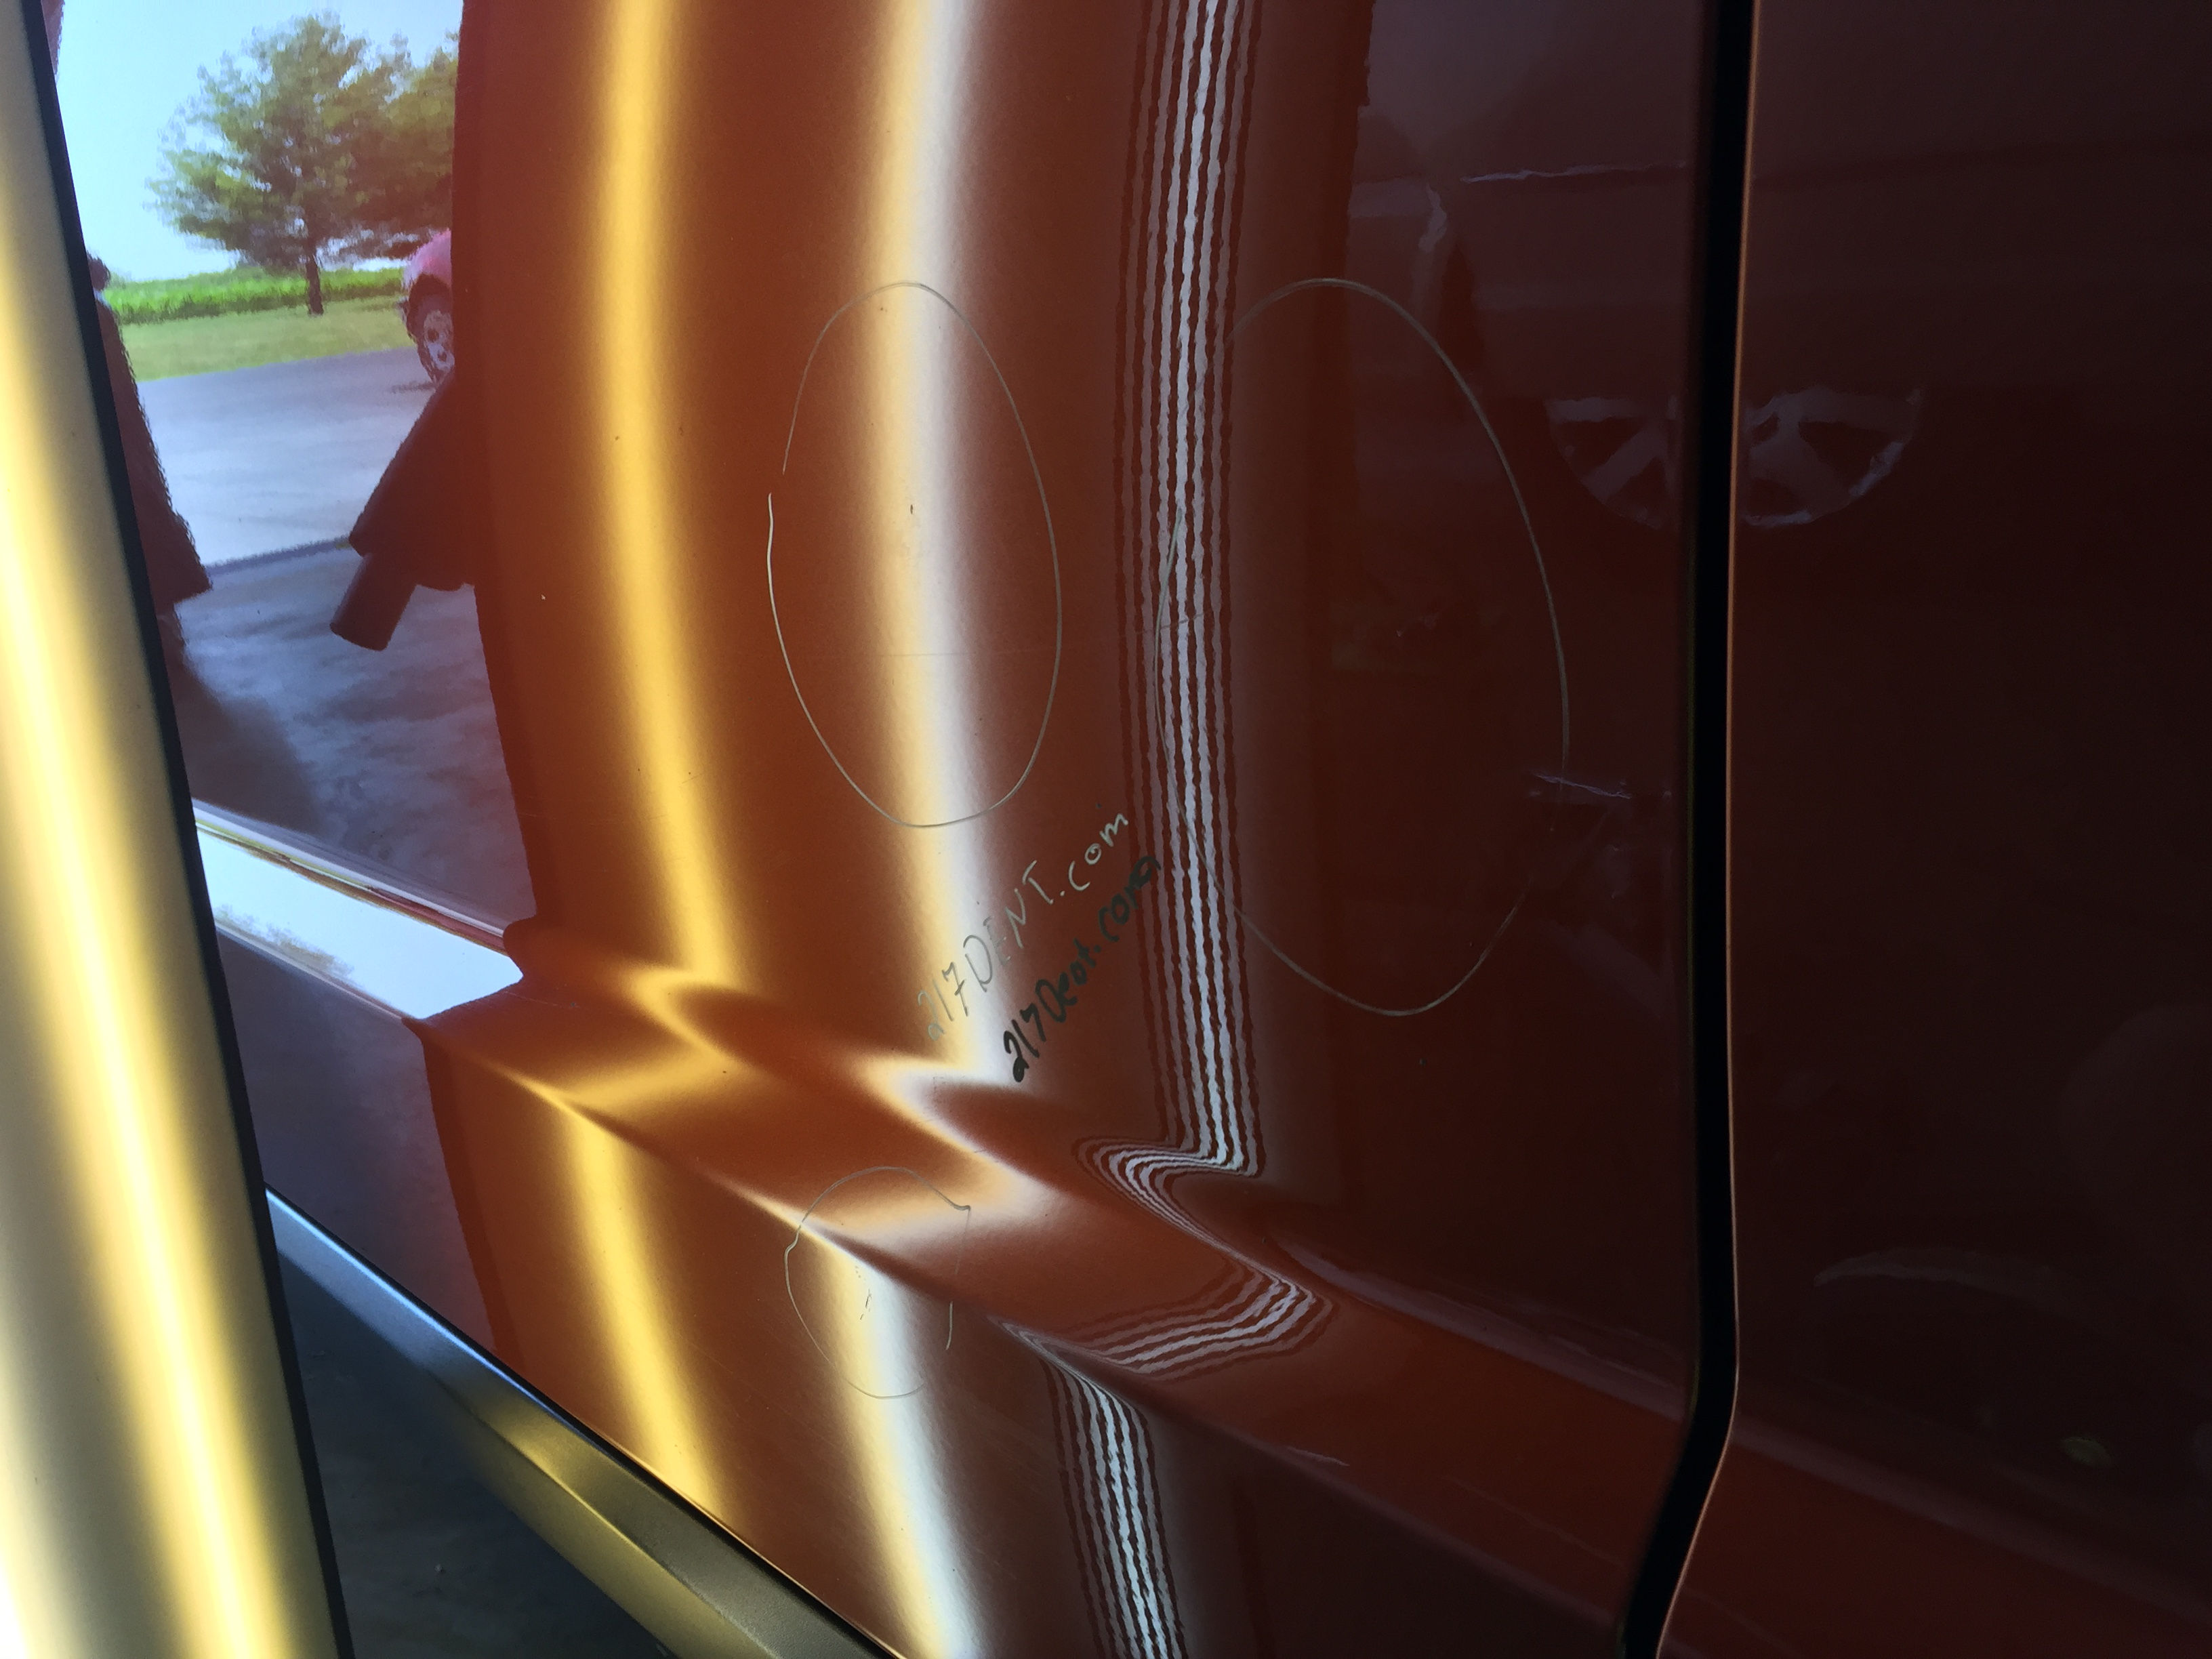 http://217dent.com 2013 Dodge Journey Drivers Door Dent Removal, Springfield Illinois